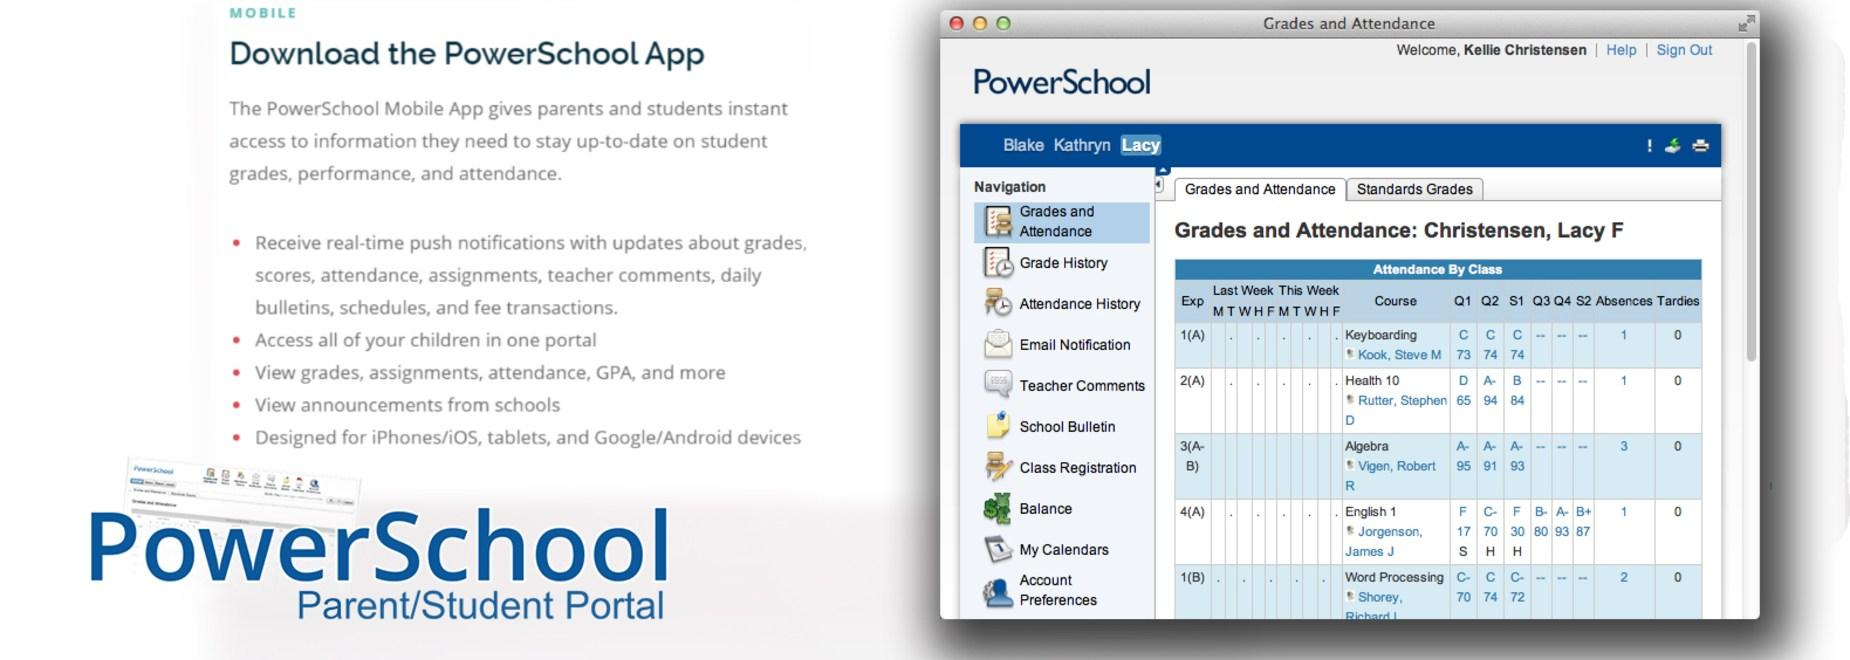 PowerSchool log on screen